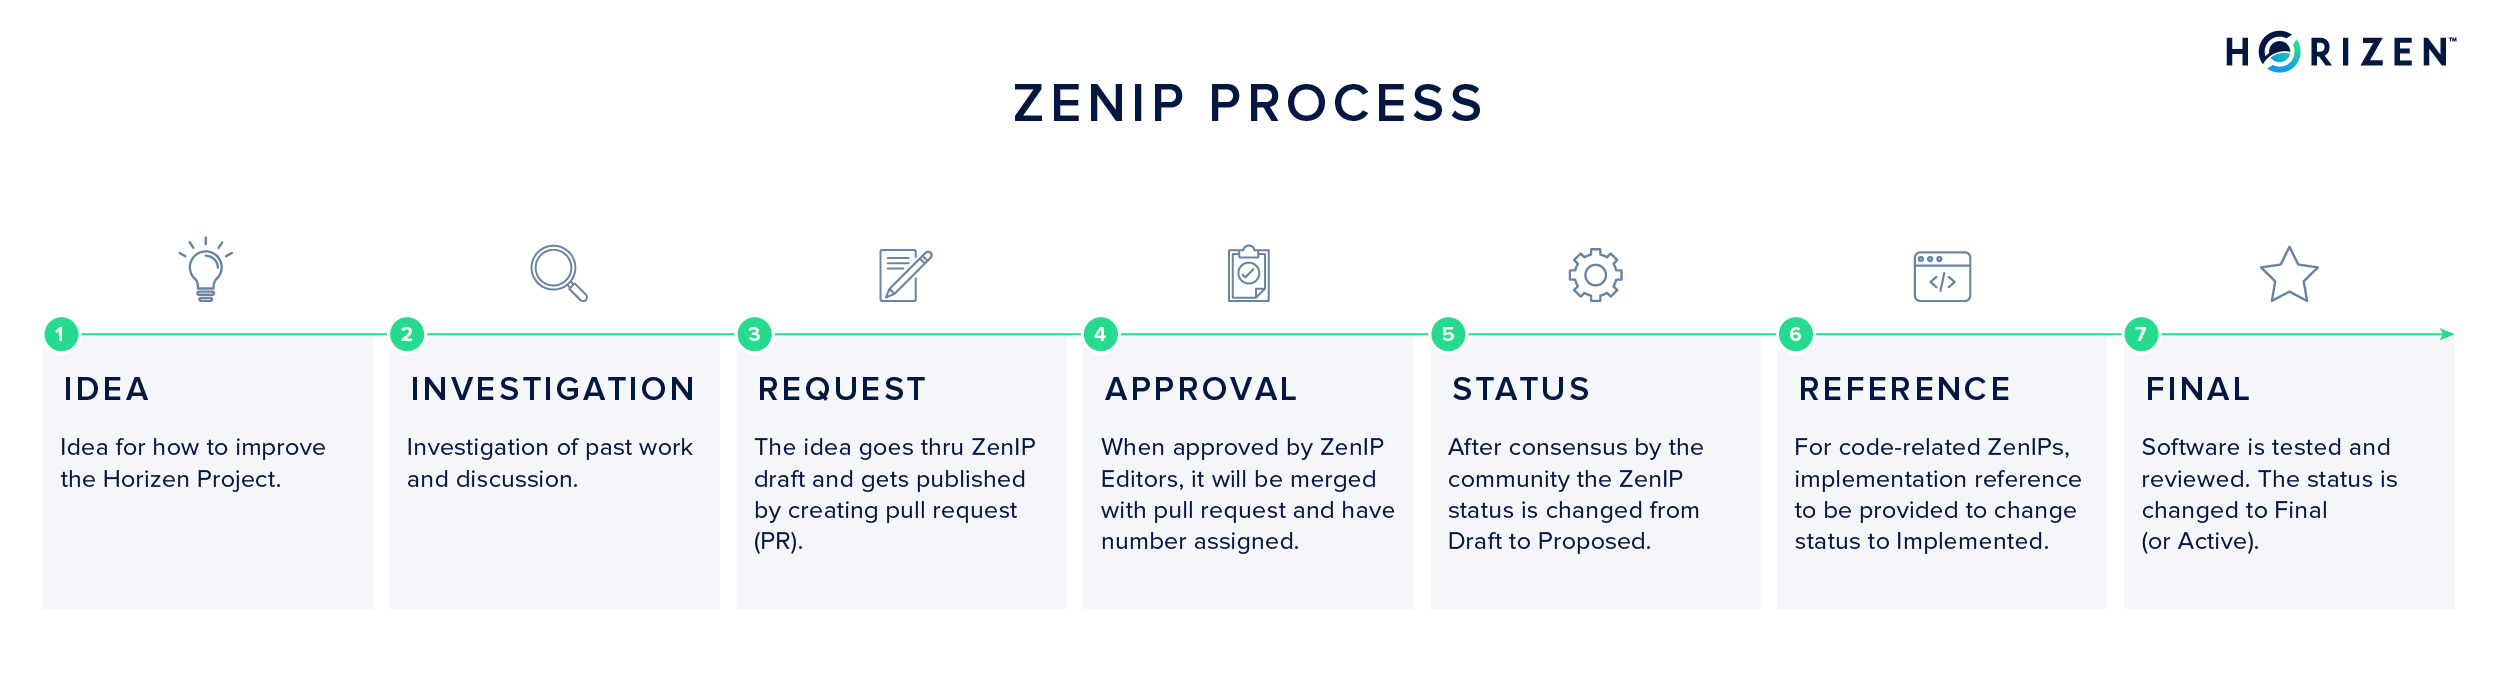 The ZenIP Workflow